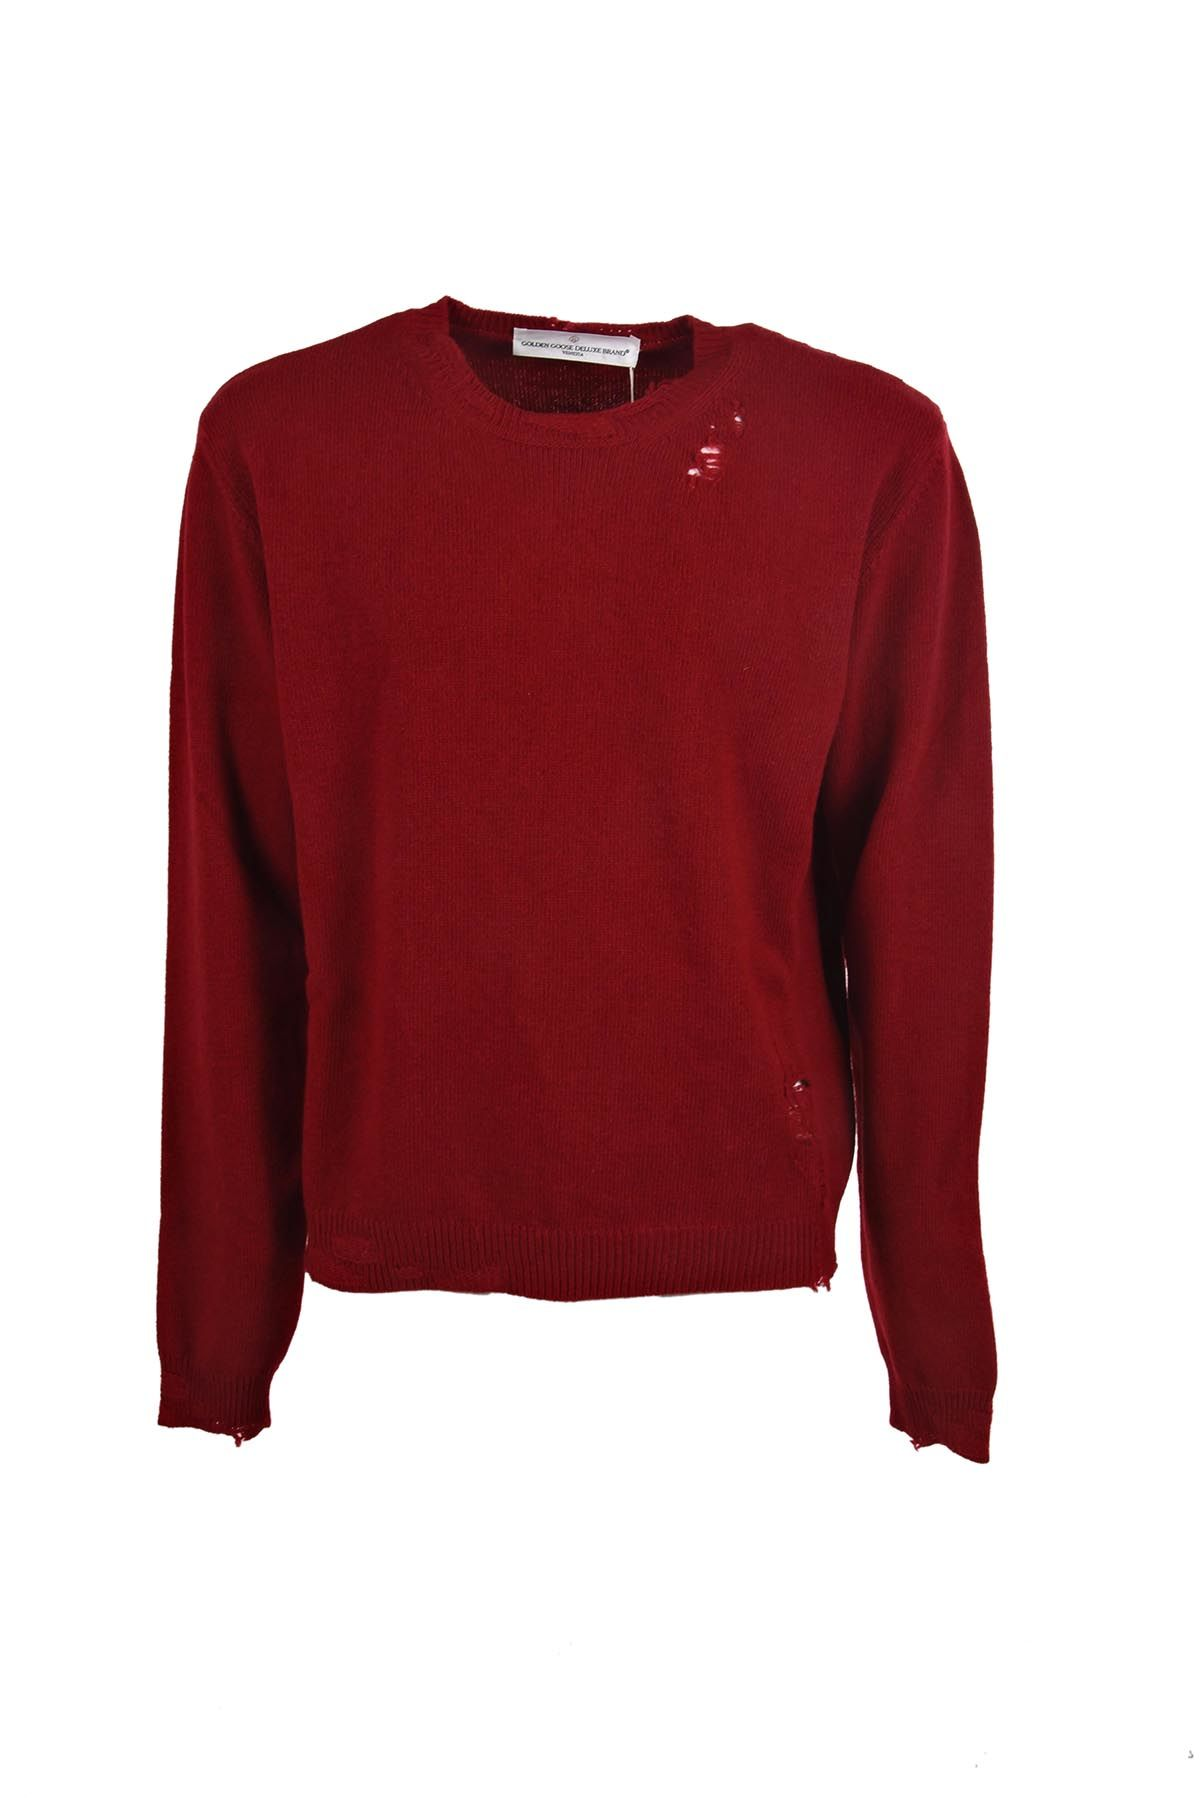 Golden Goose Classic Knitted Sweater